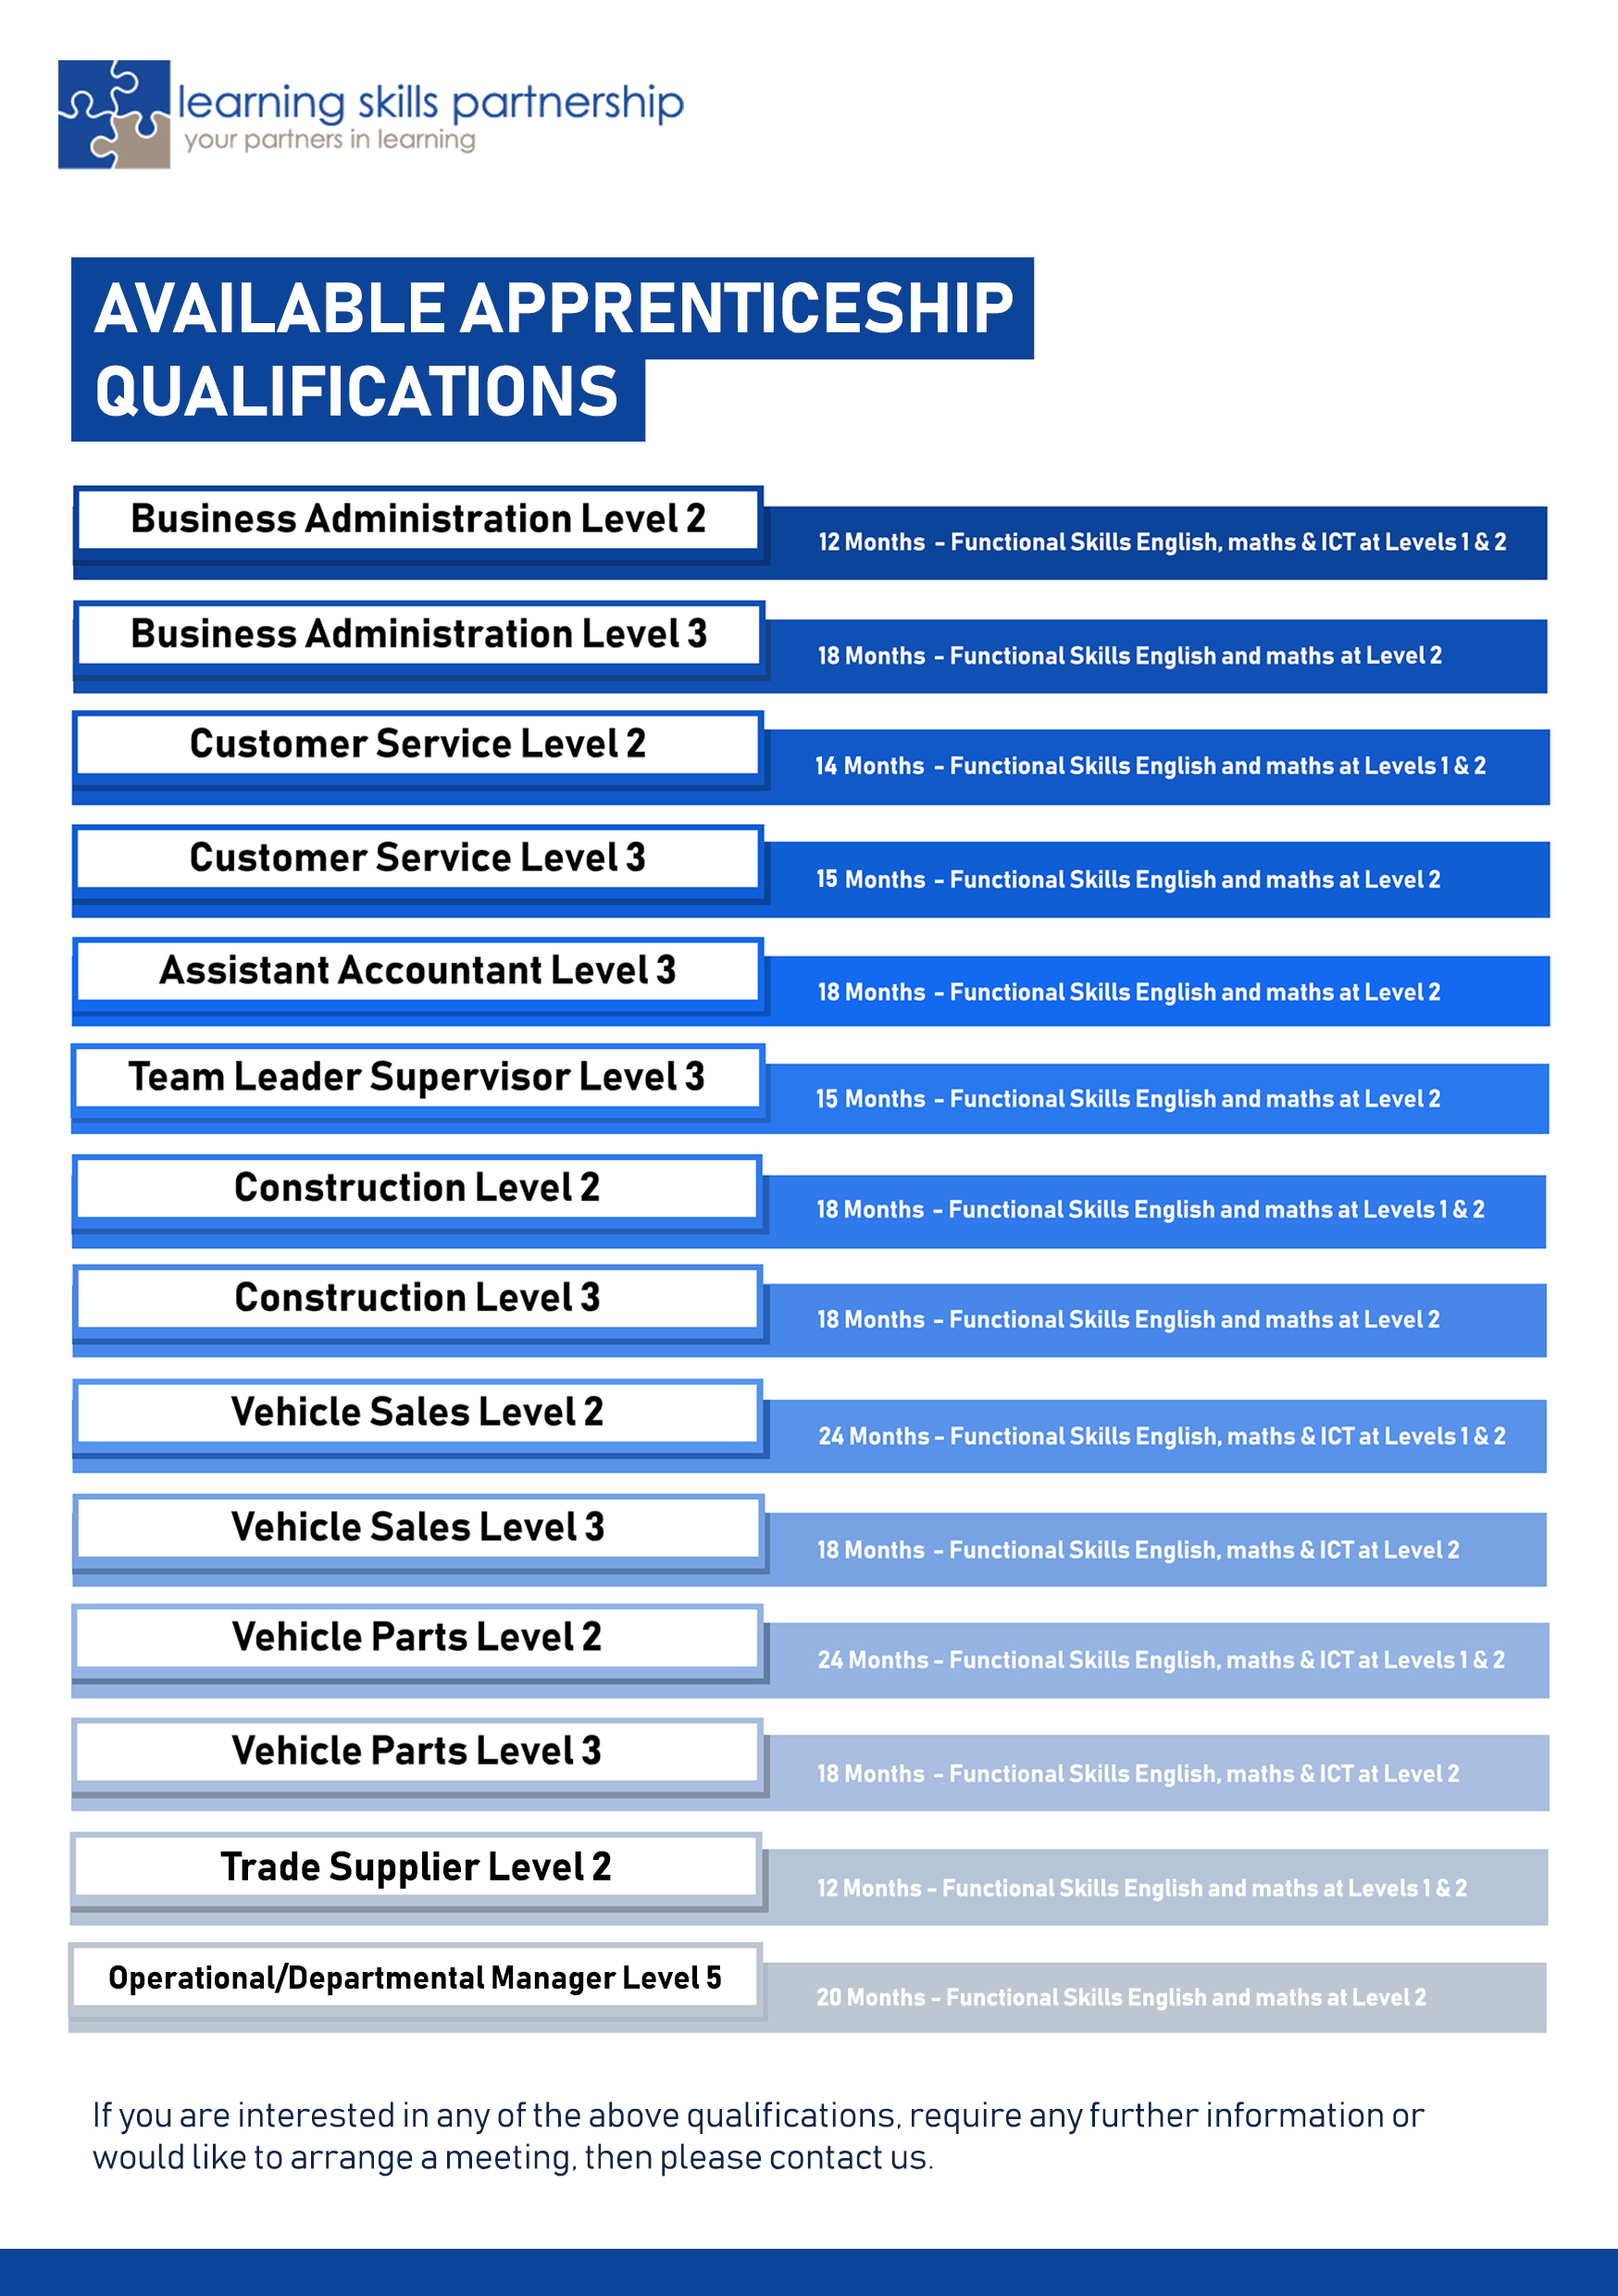 Available Apprenticeship Qualifications - LSP.jpg